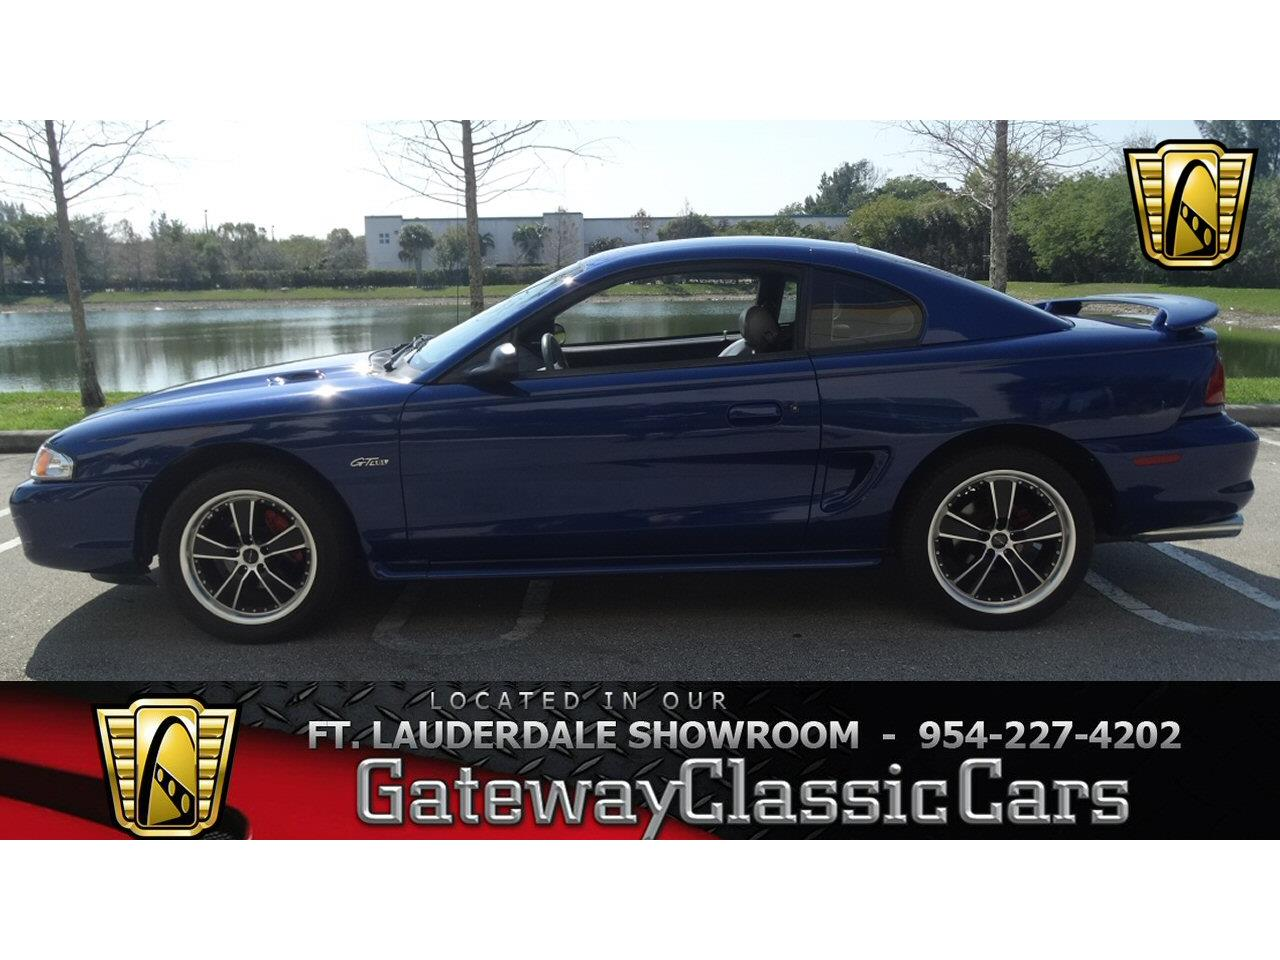 Large Picture of '96 Ford Mustang located in Coral Springs Florida - $9,995.00 Offered by Gateway Classic Cars - Fort Lauderdale - KJ79